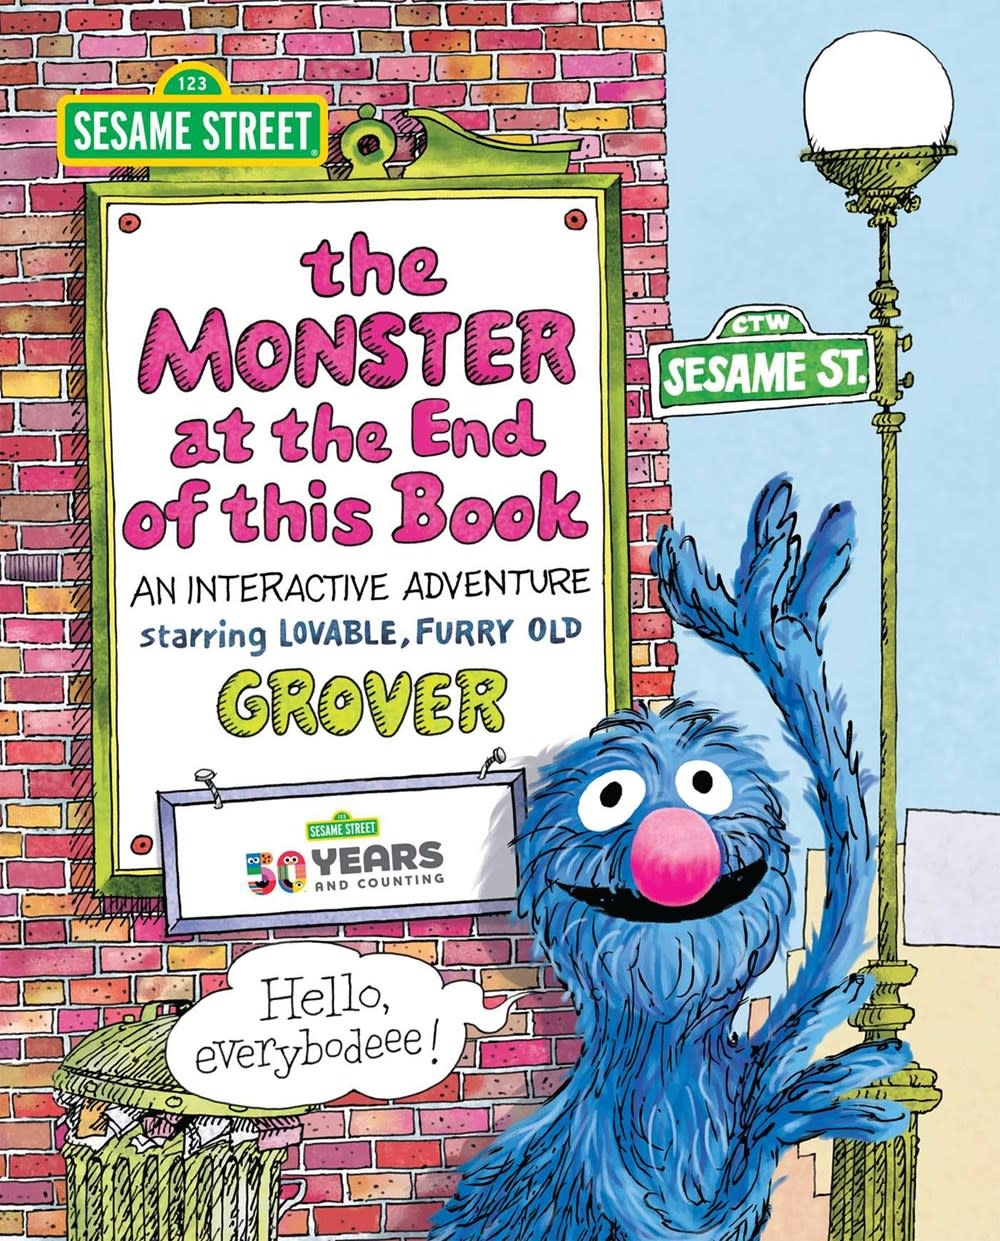 Printers Row Sesame Street: The Monster at the End of This Book